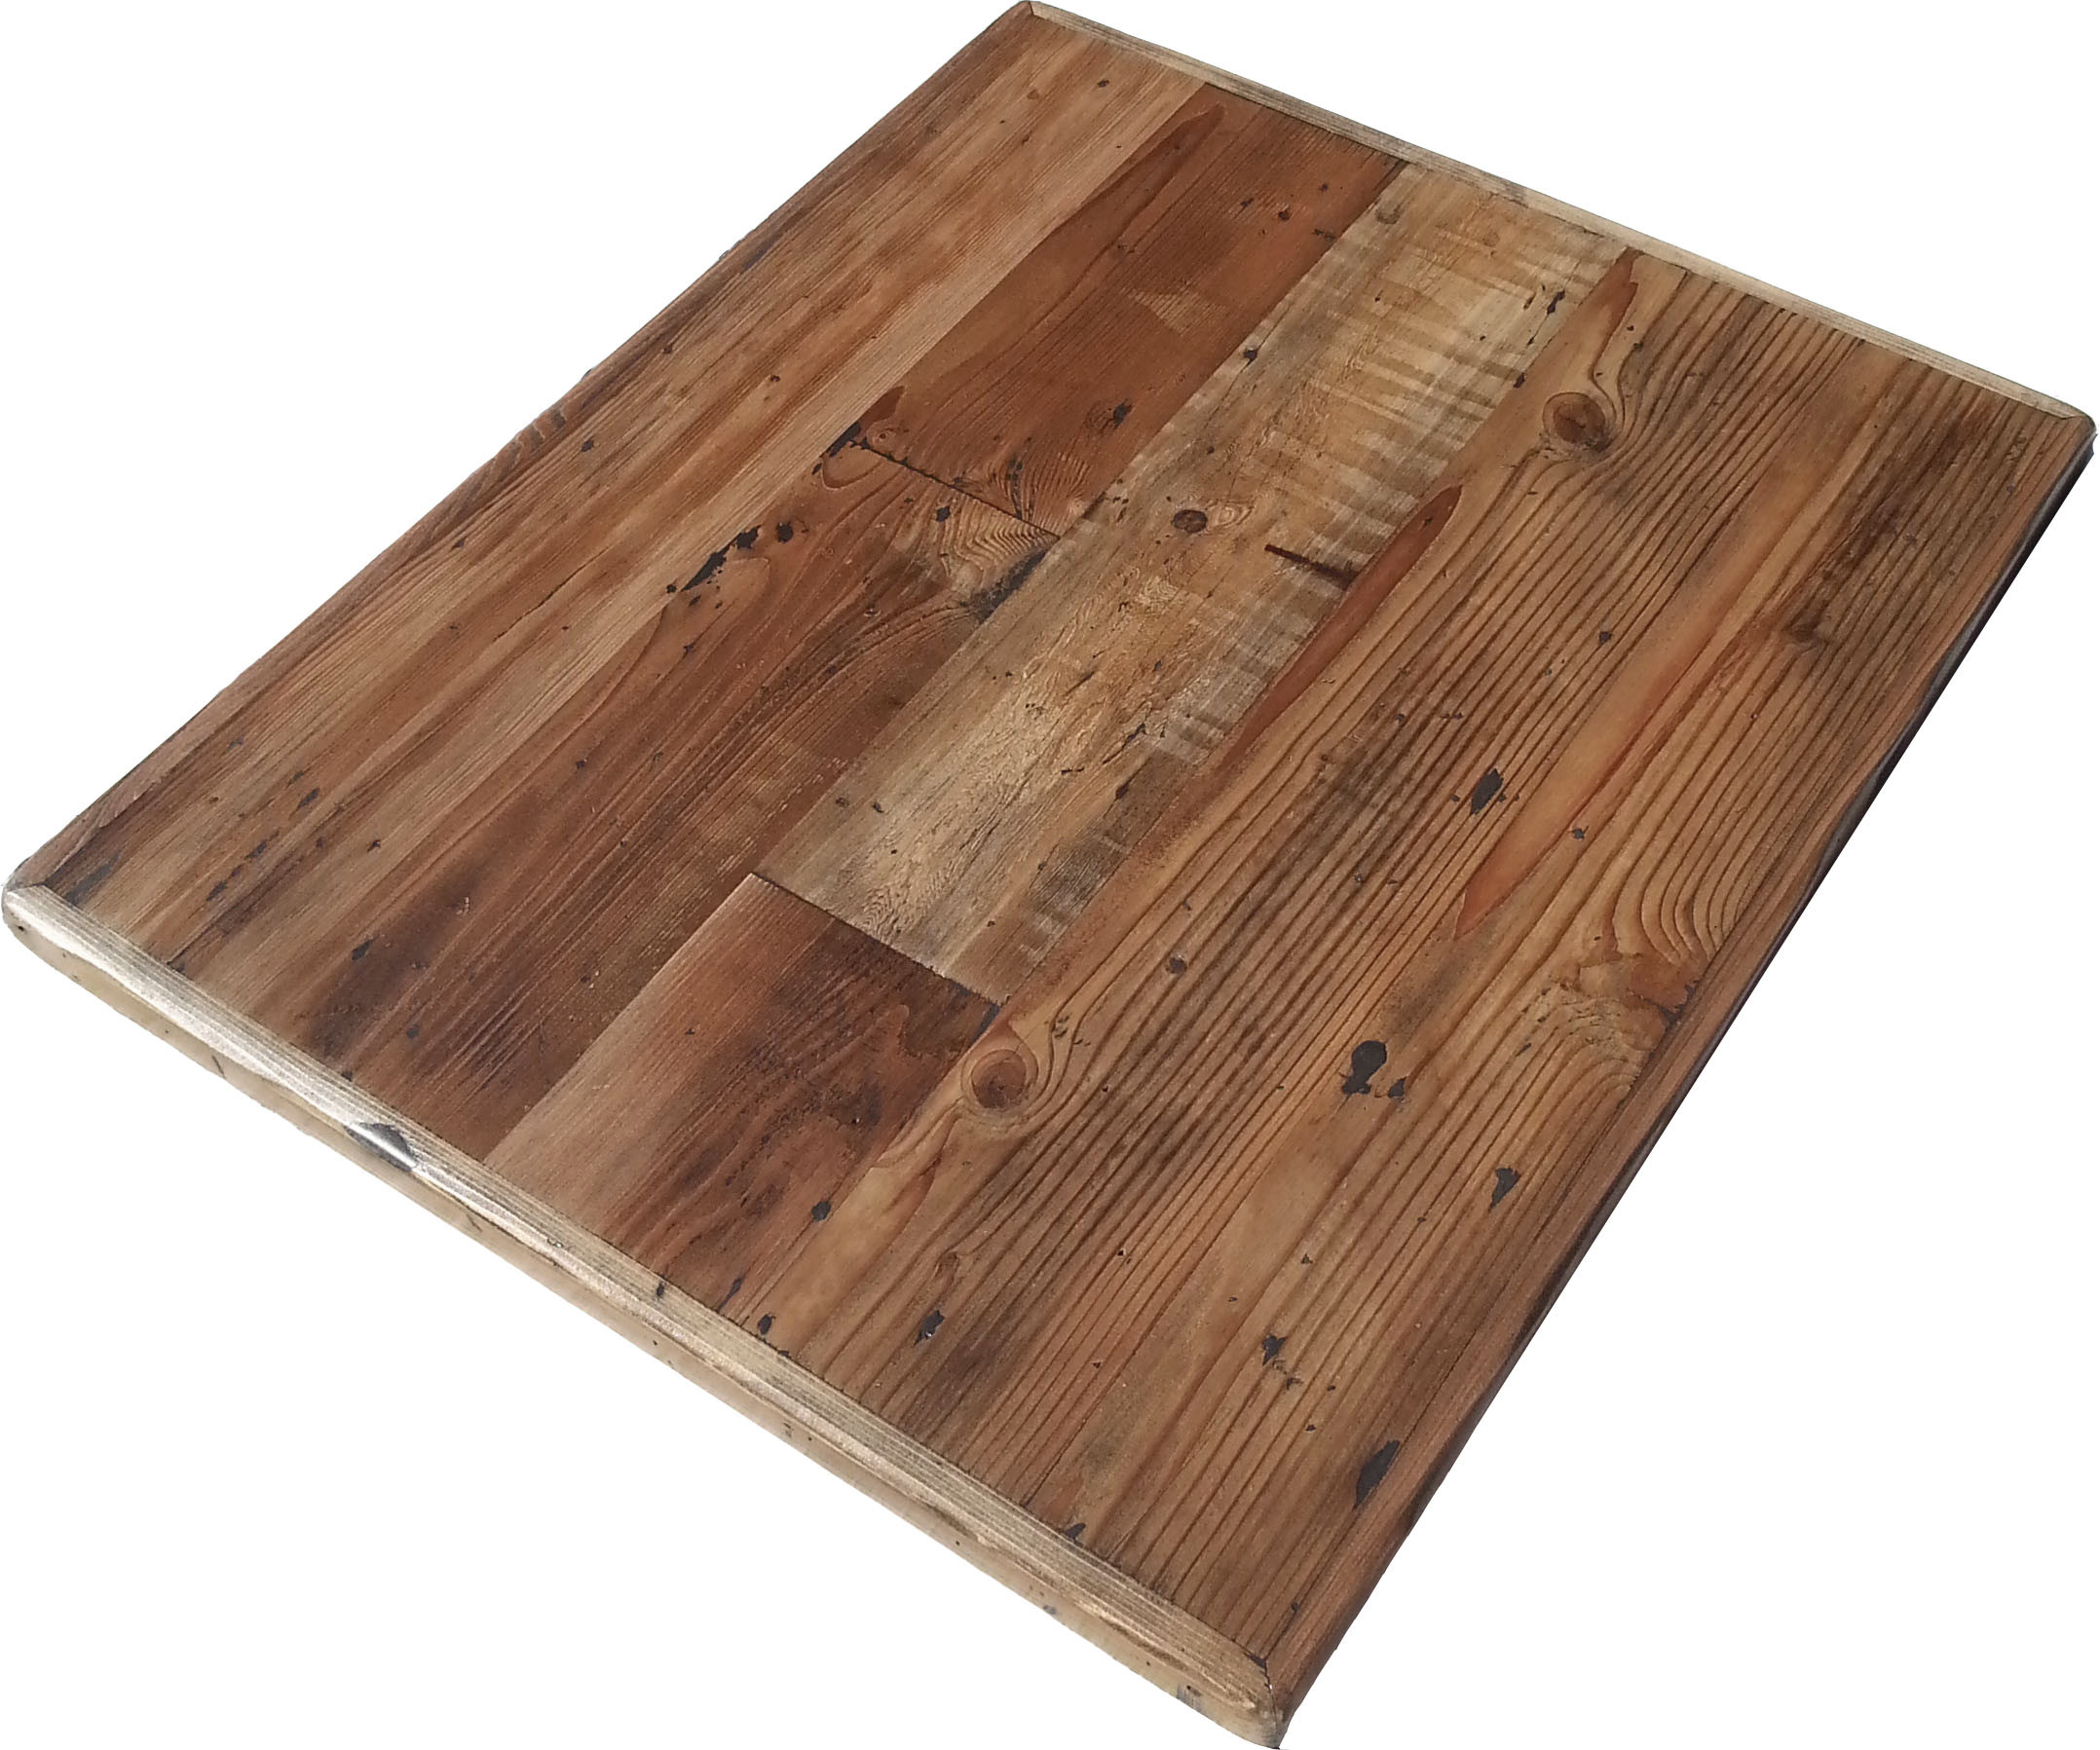 Reclaimed Wood Table Tops | Restaurant & Cafe Supplies